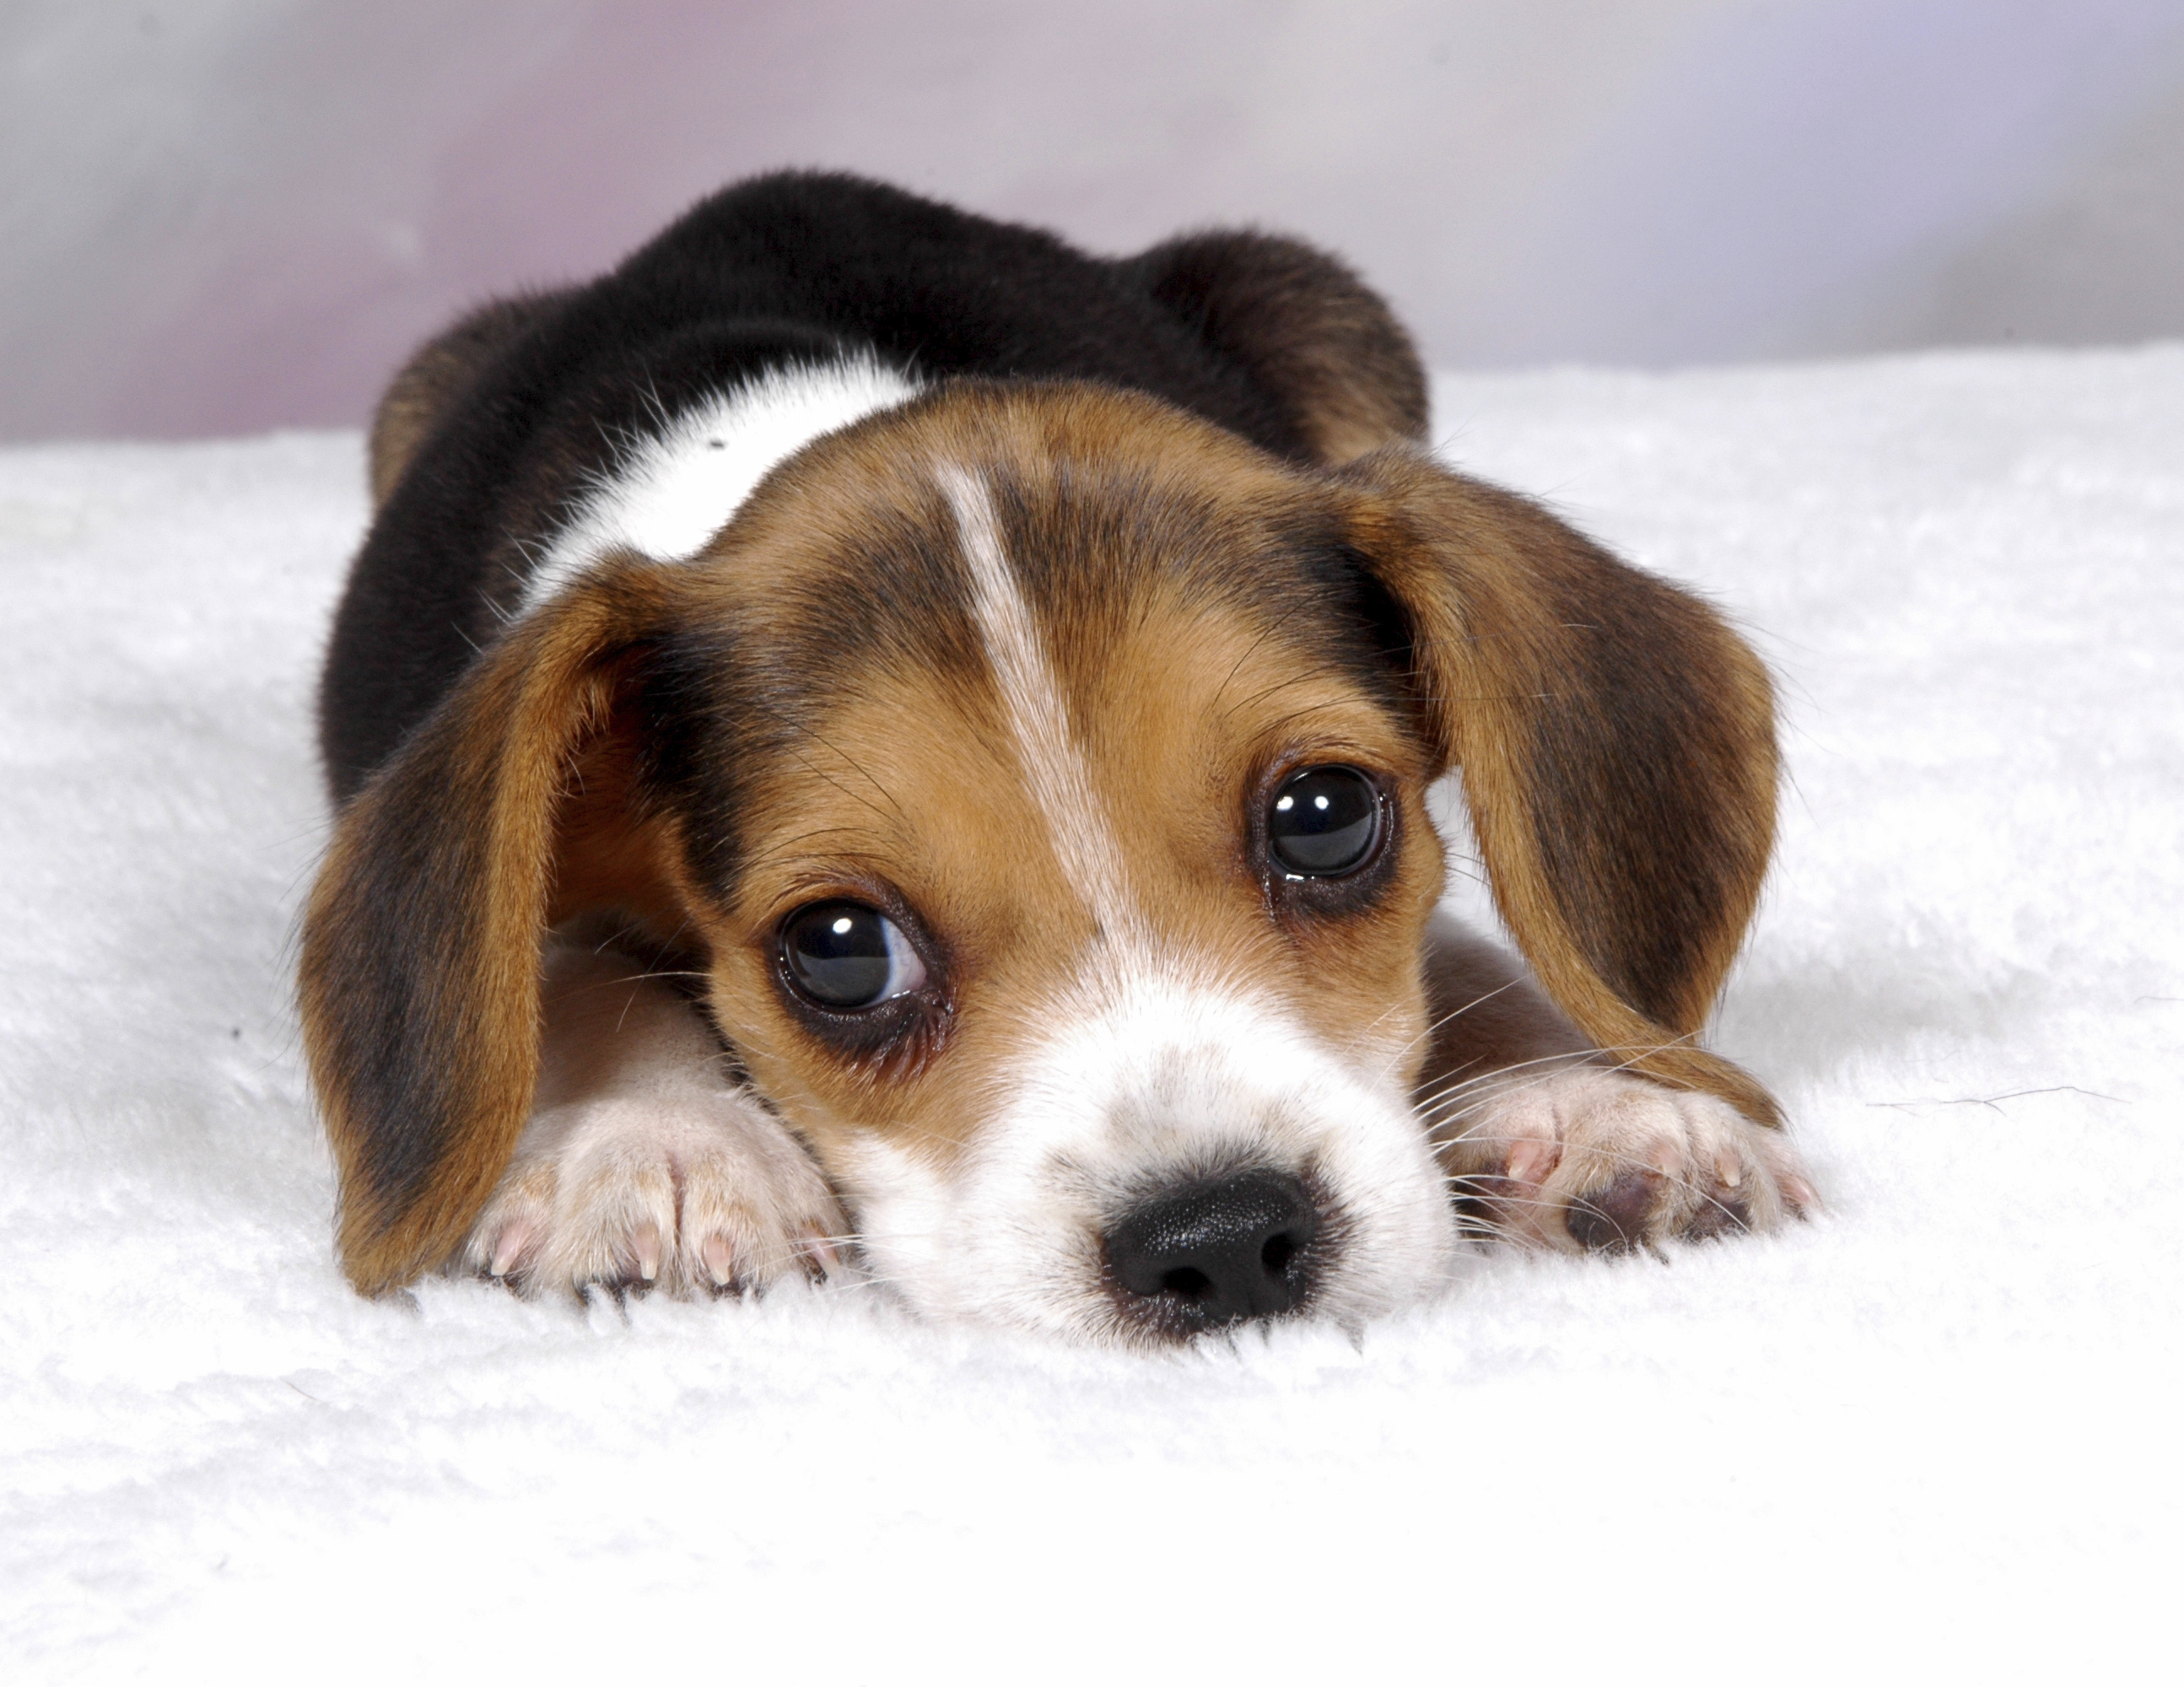 beagle_pup_very_young_sad.jpg